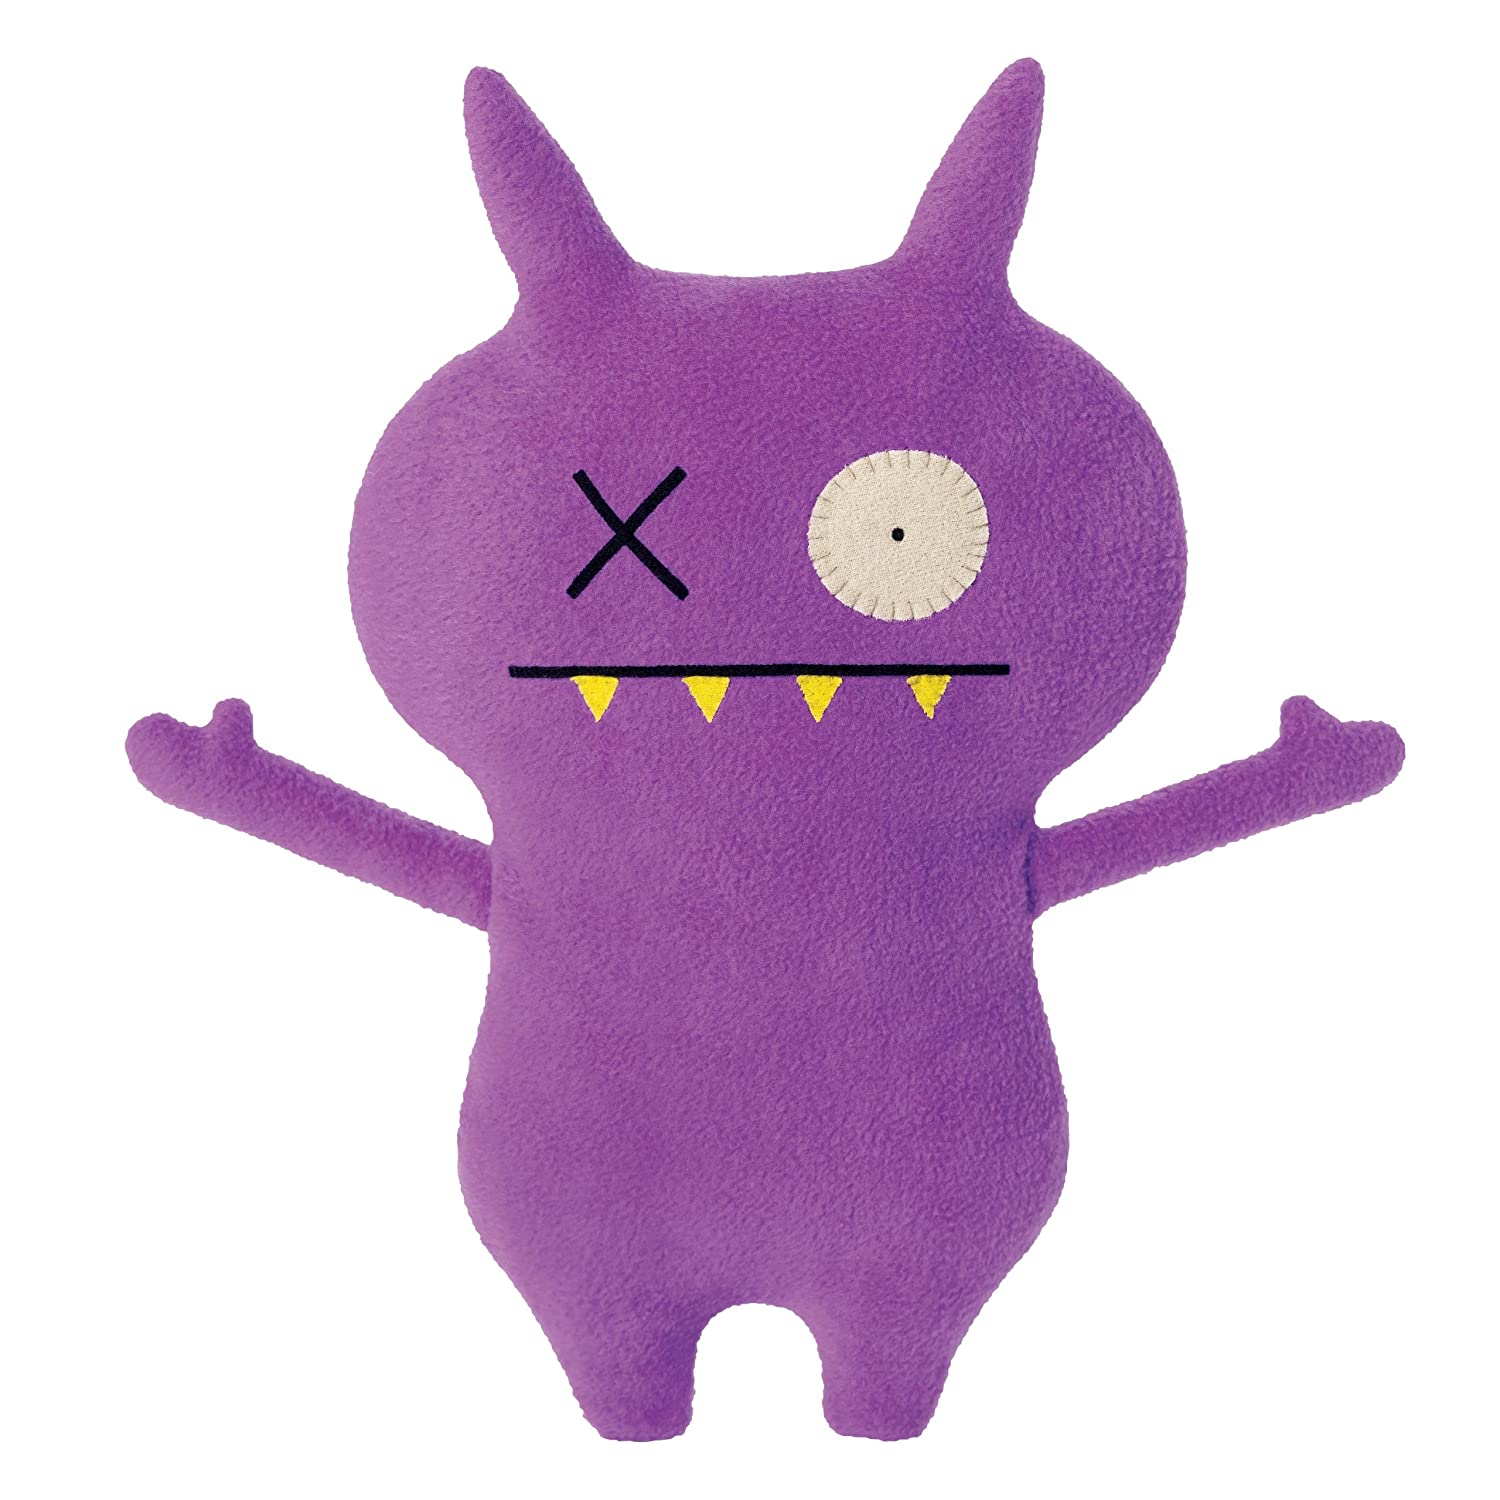 Handsome Panther Purple Uglydoll Handsome Panther Classic Soft Toy